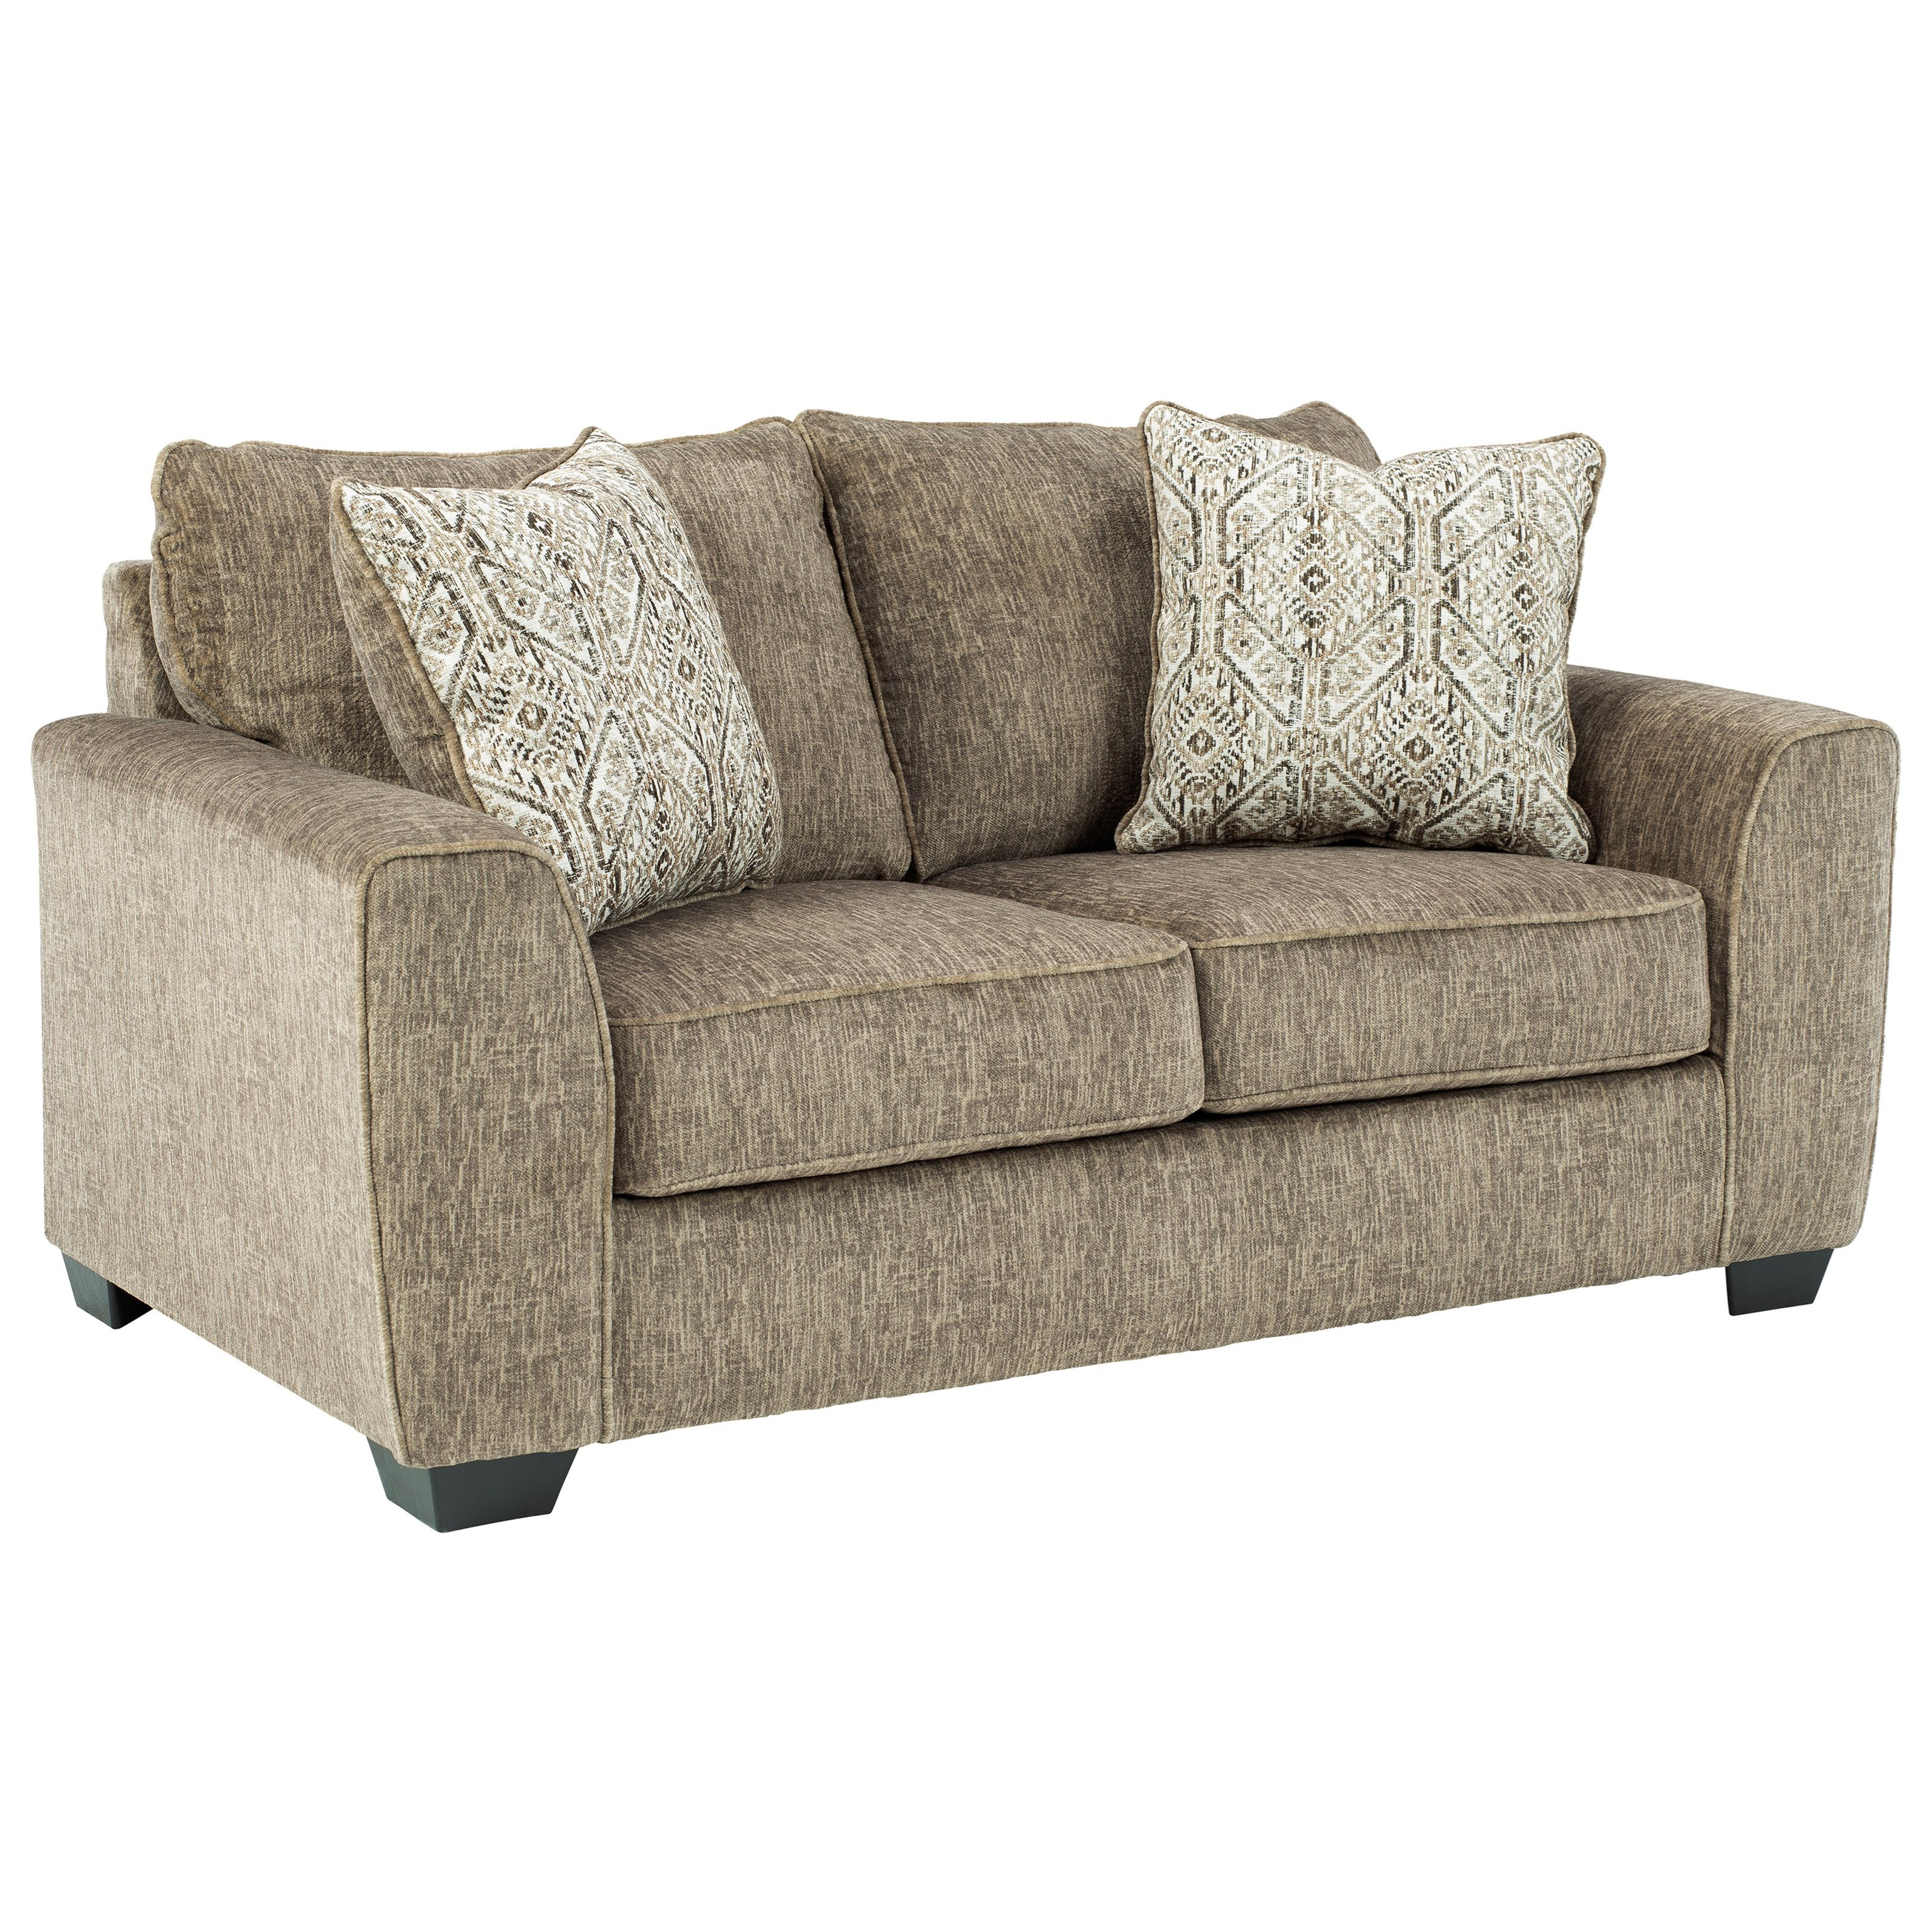 Olin Loveseat by Benchcraft at Value City Furniture